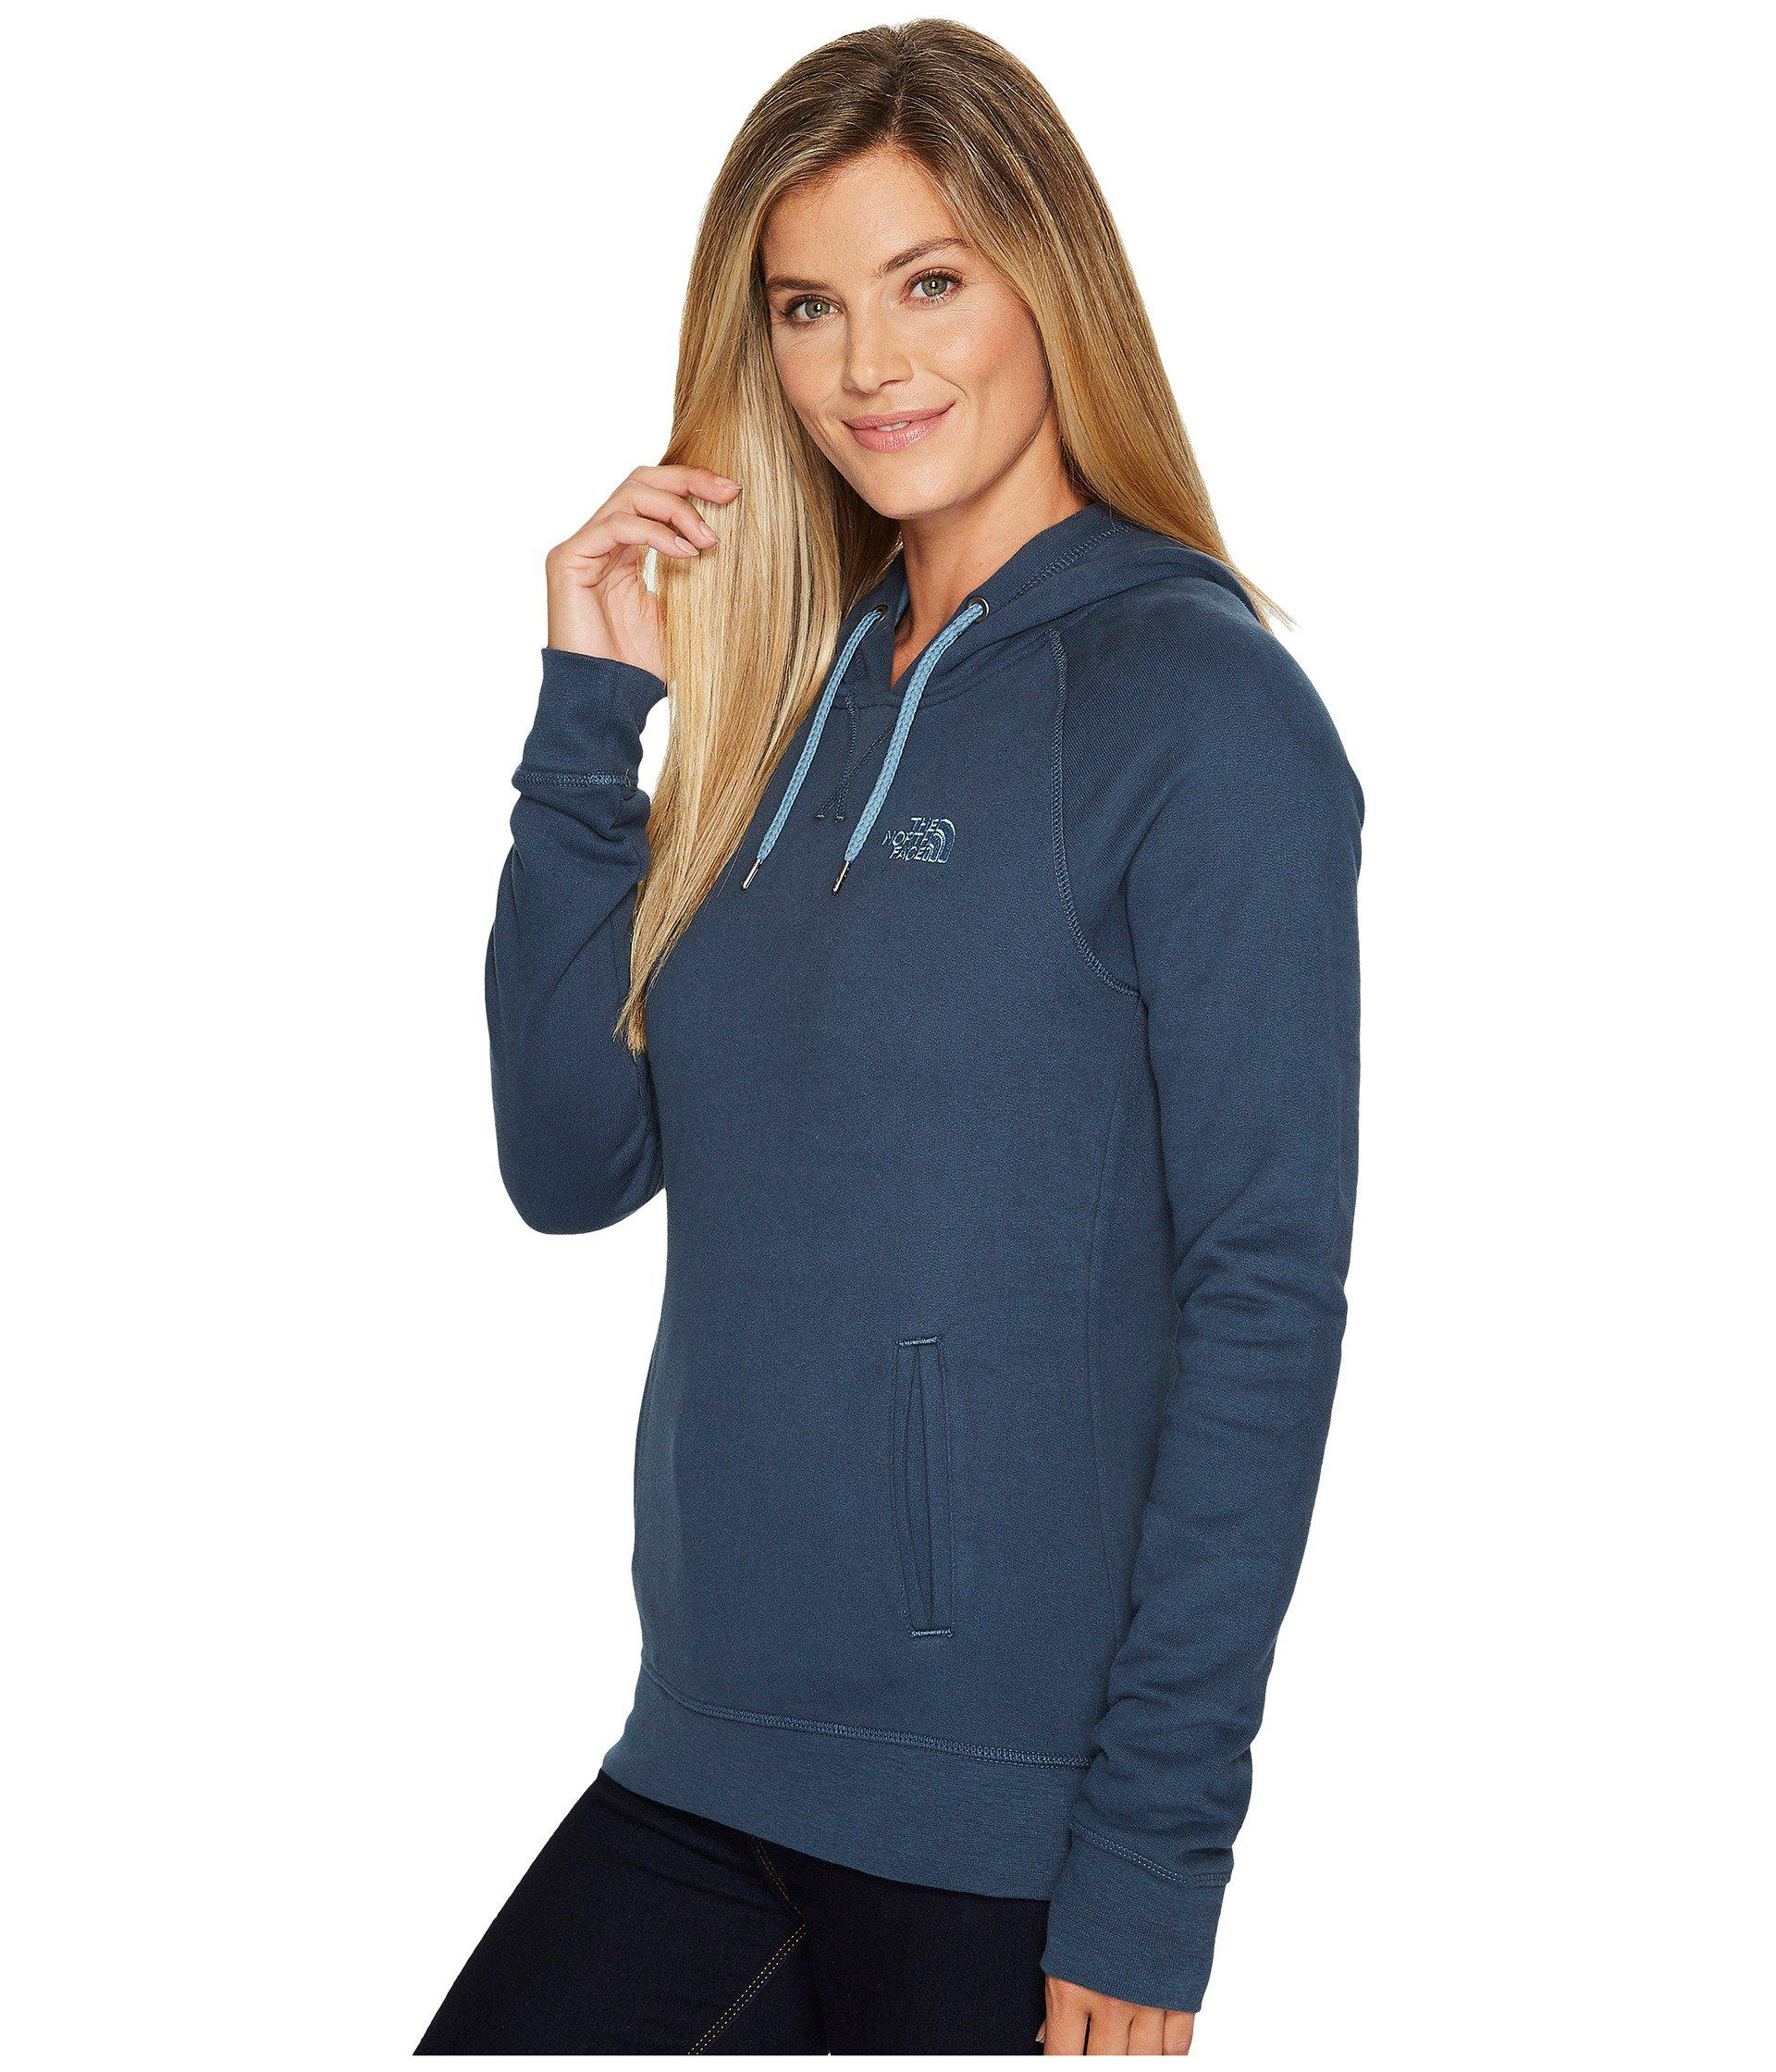 4f8e868472d59 Lyst - The North Face French Terry Logo Pullover Hoodie in Blue - Save  31.818181818181813%